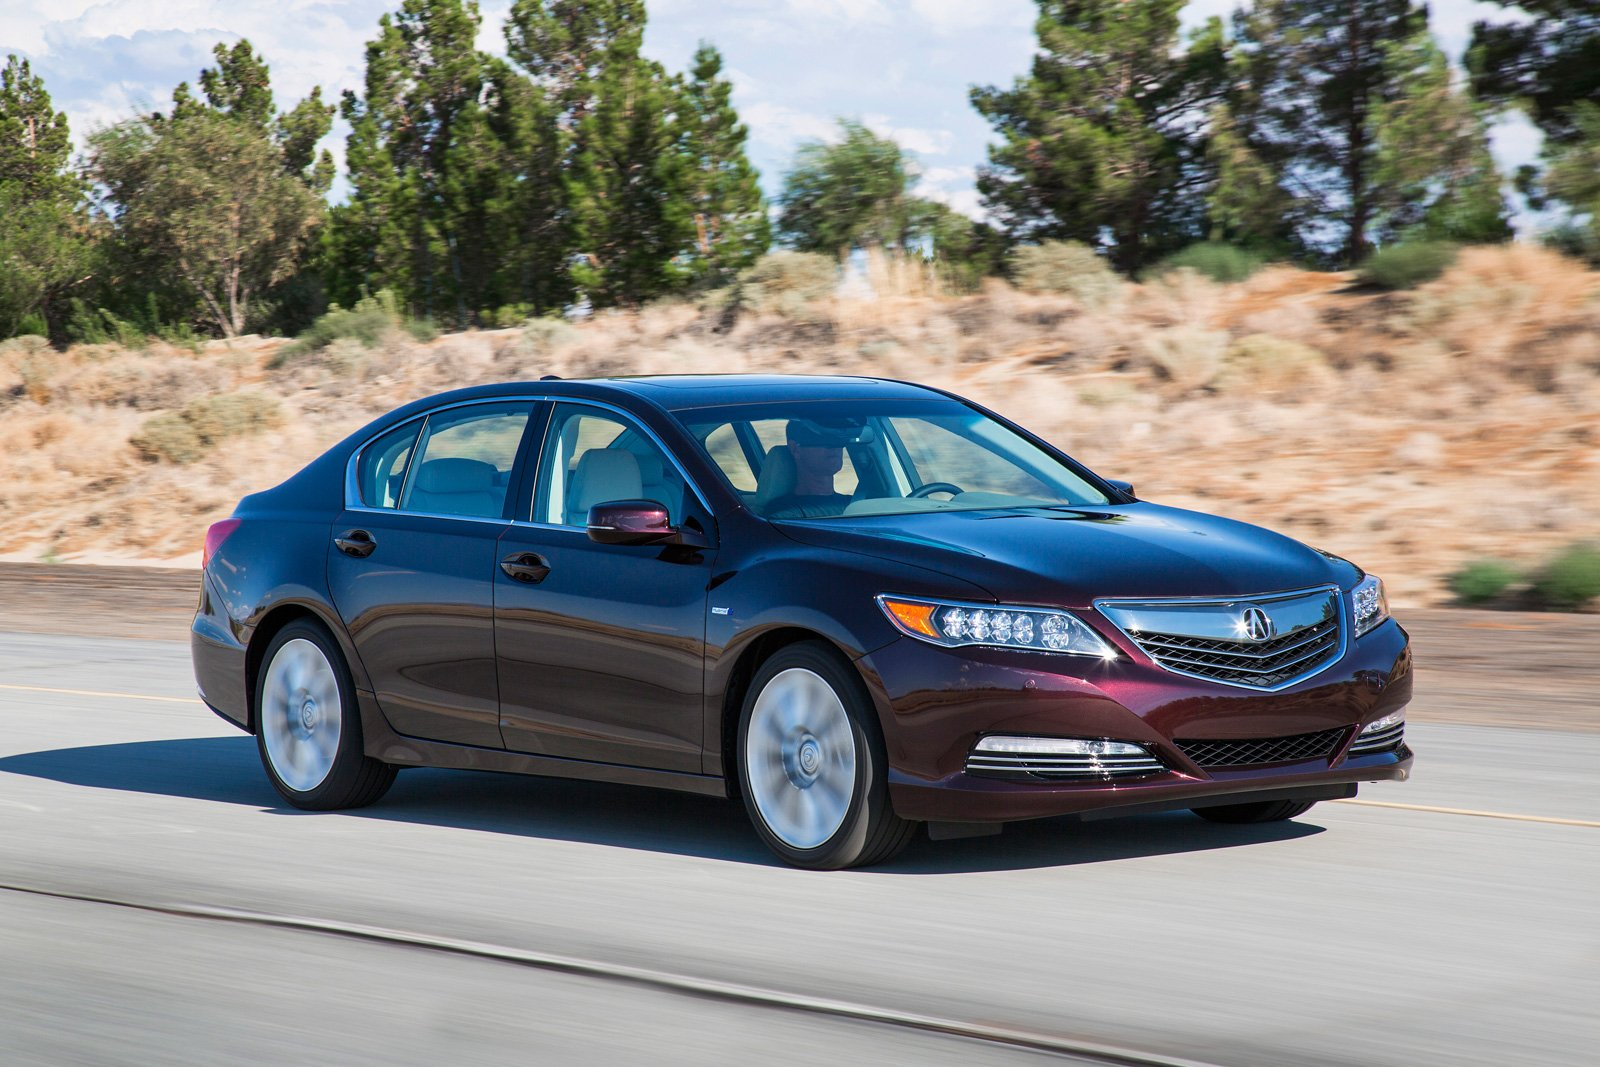 2017 Acura Rlx Sport Hybrid >> 2017 Acura Rlx Sport Hybrid Borrows Technology From The Nsx